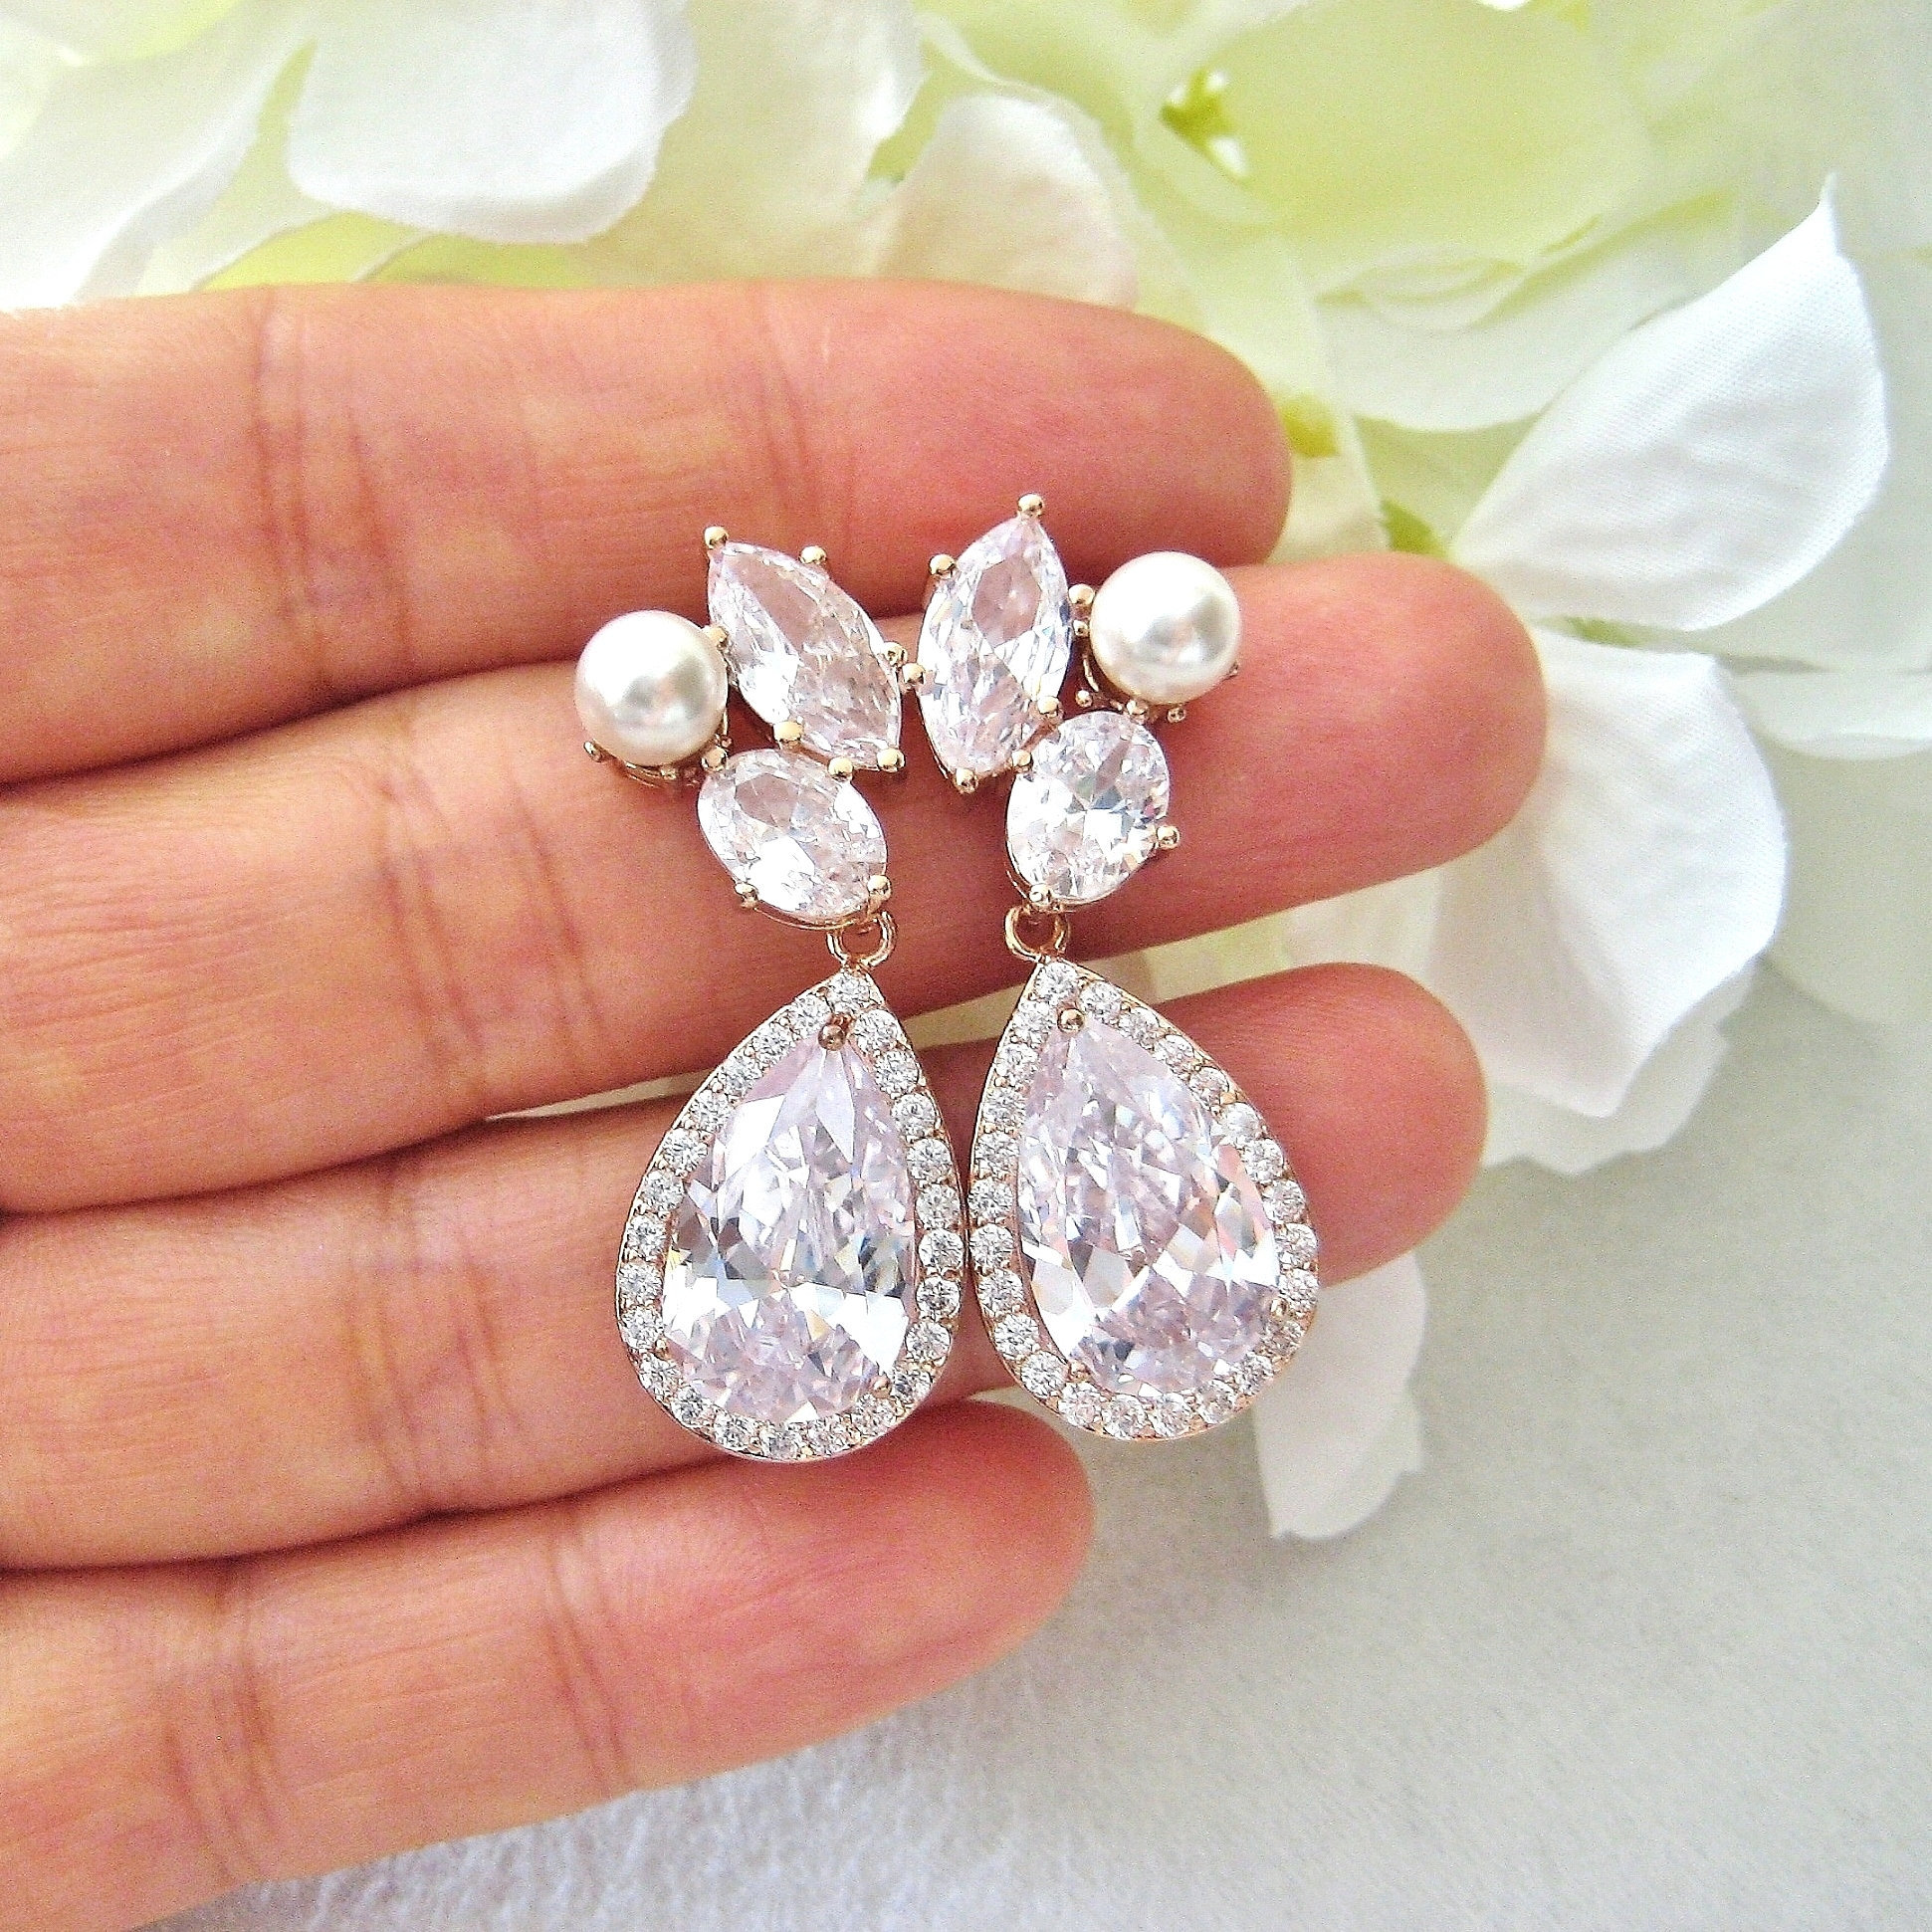 Bridal Crystal Earrings Rose Gold Teardrop Wedding Pearl Swarovski Bridesmaids Gift E312